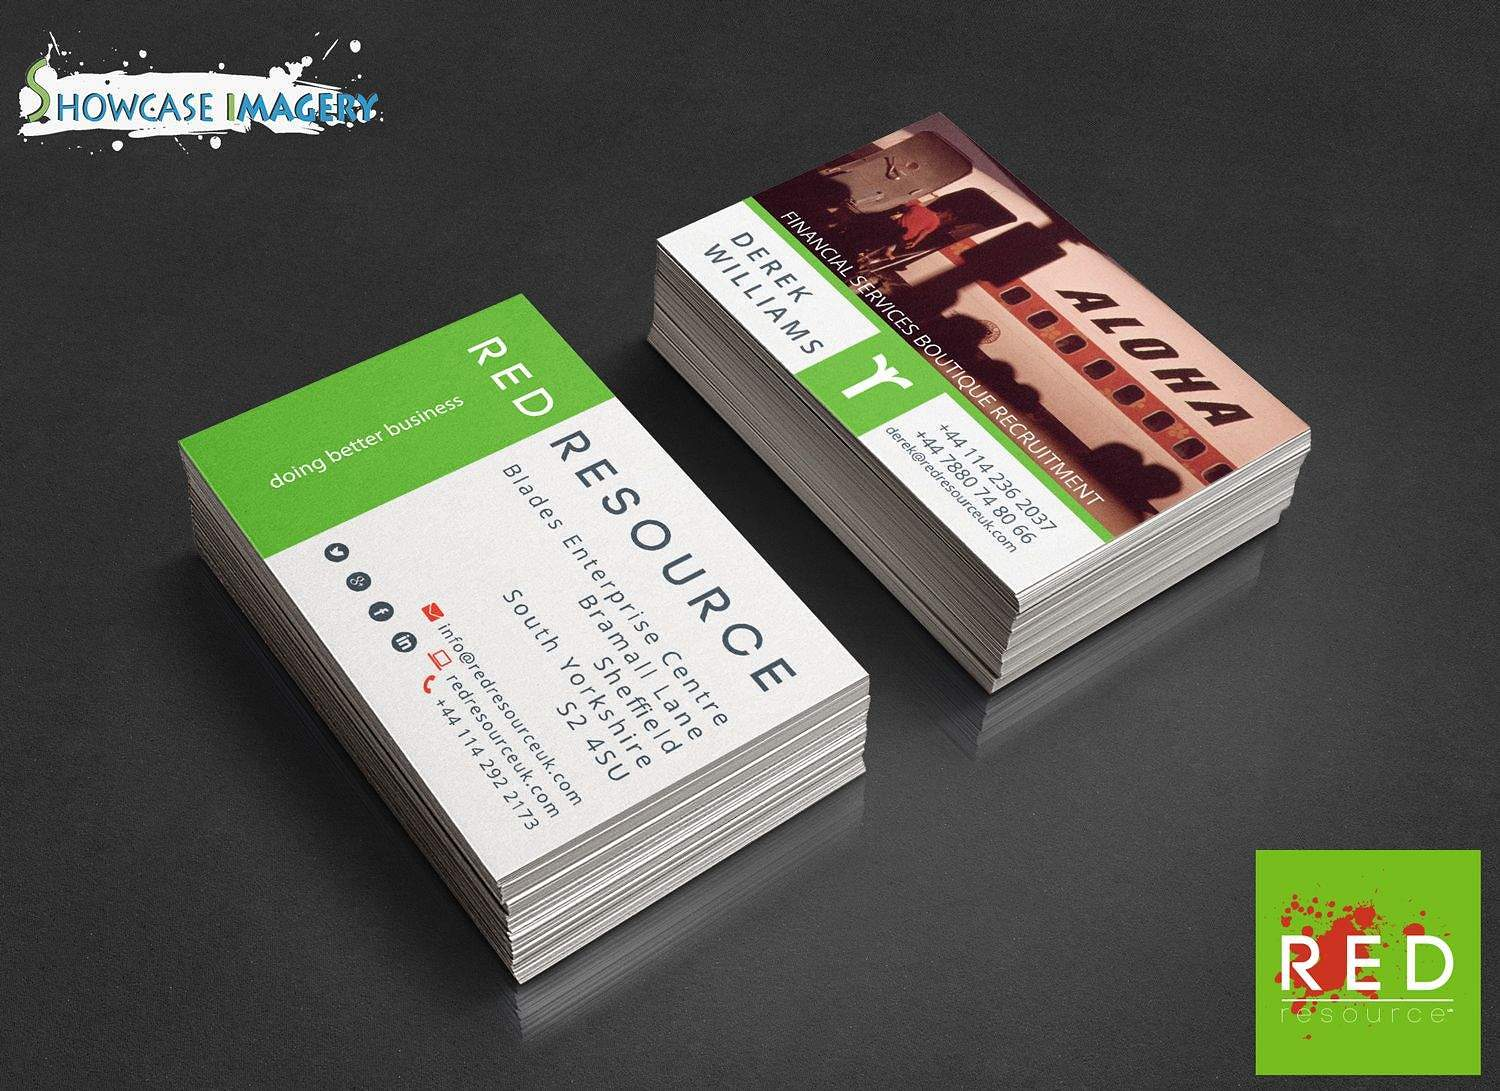 Red resource uk business card design 2015 showcase imagery colourmoves